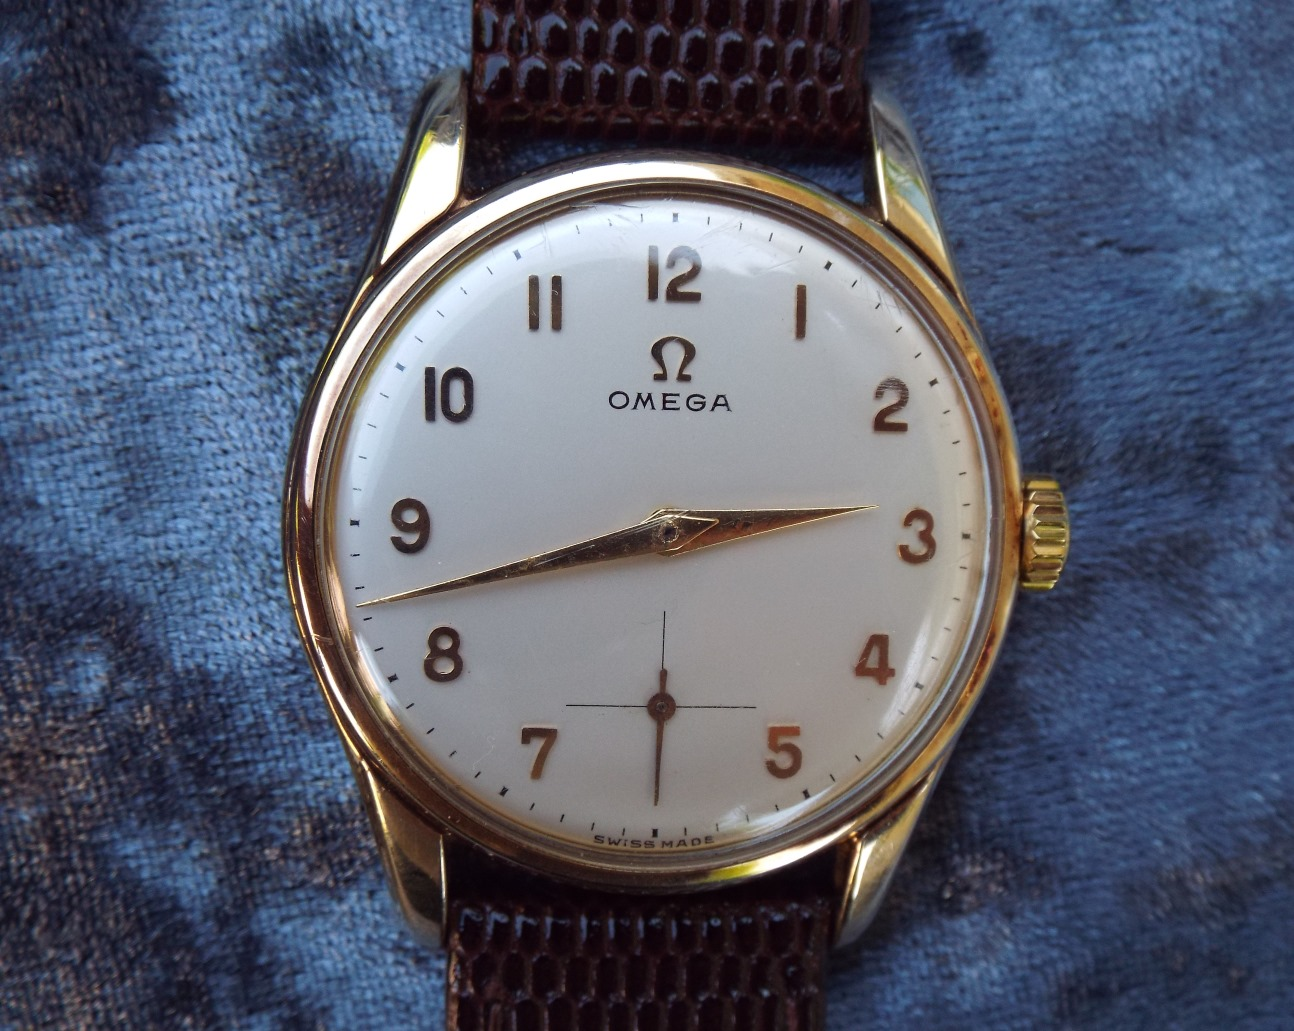 datum watches a watch of guide the and original manual metro generously post size predecessor i sophisticated winding top bigger proportioned is all wind time beautiful wonderfully